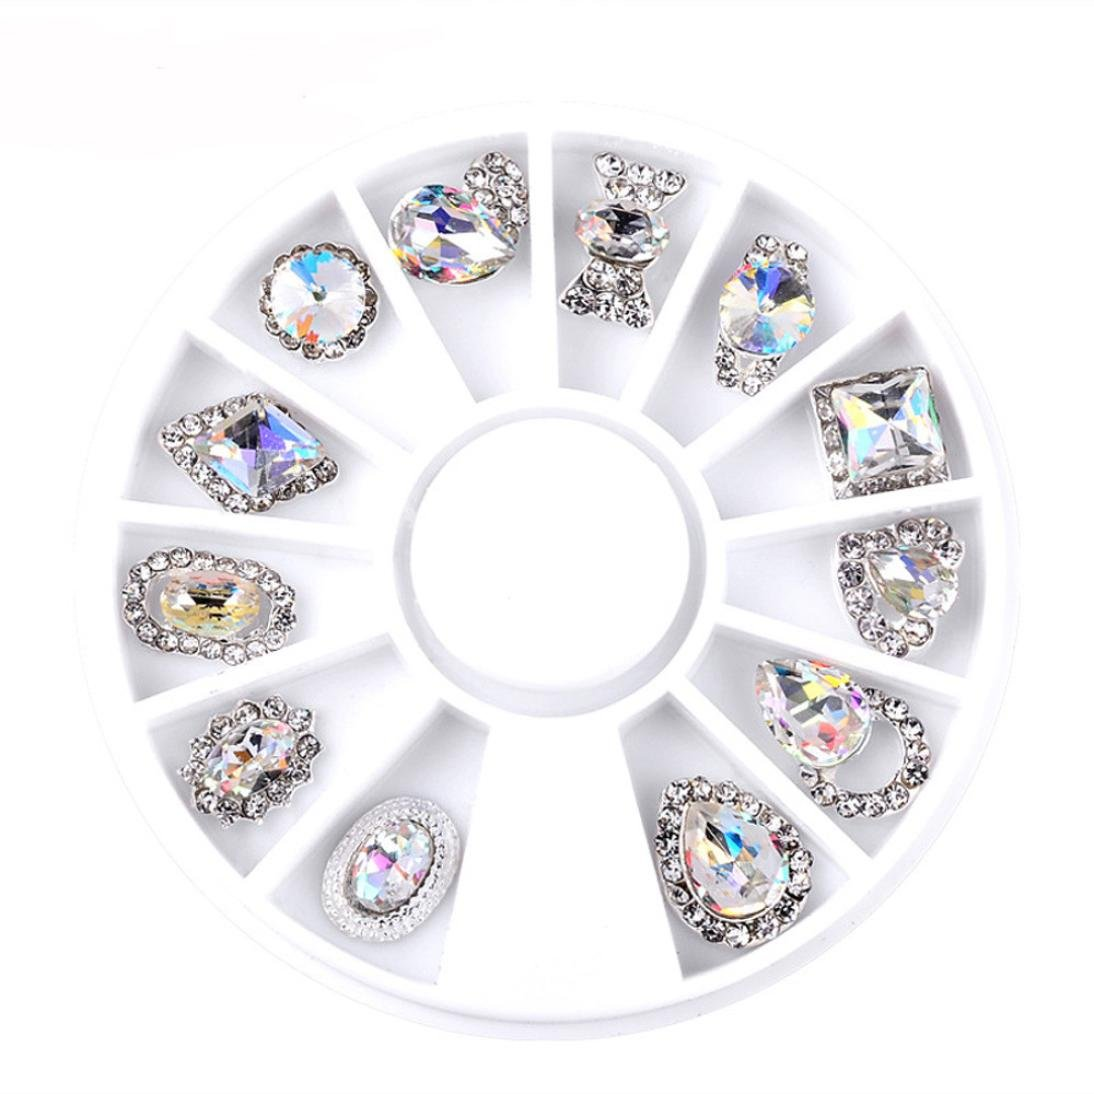 3D Nail Art Decorations Rhinestone 5 Wheel Sets, 3D Colorful Rhombus Rhinestones, Colored Rhinestones, Sliver Crystal Gemstones, 3D Glitter Rhinestones Charm, Gold And Silver 3D Metal Studs (C) HARRYSTORE